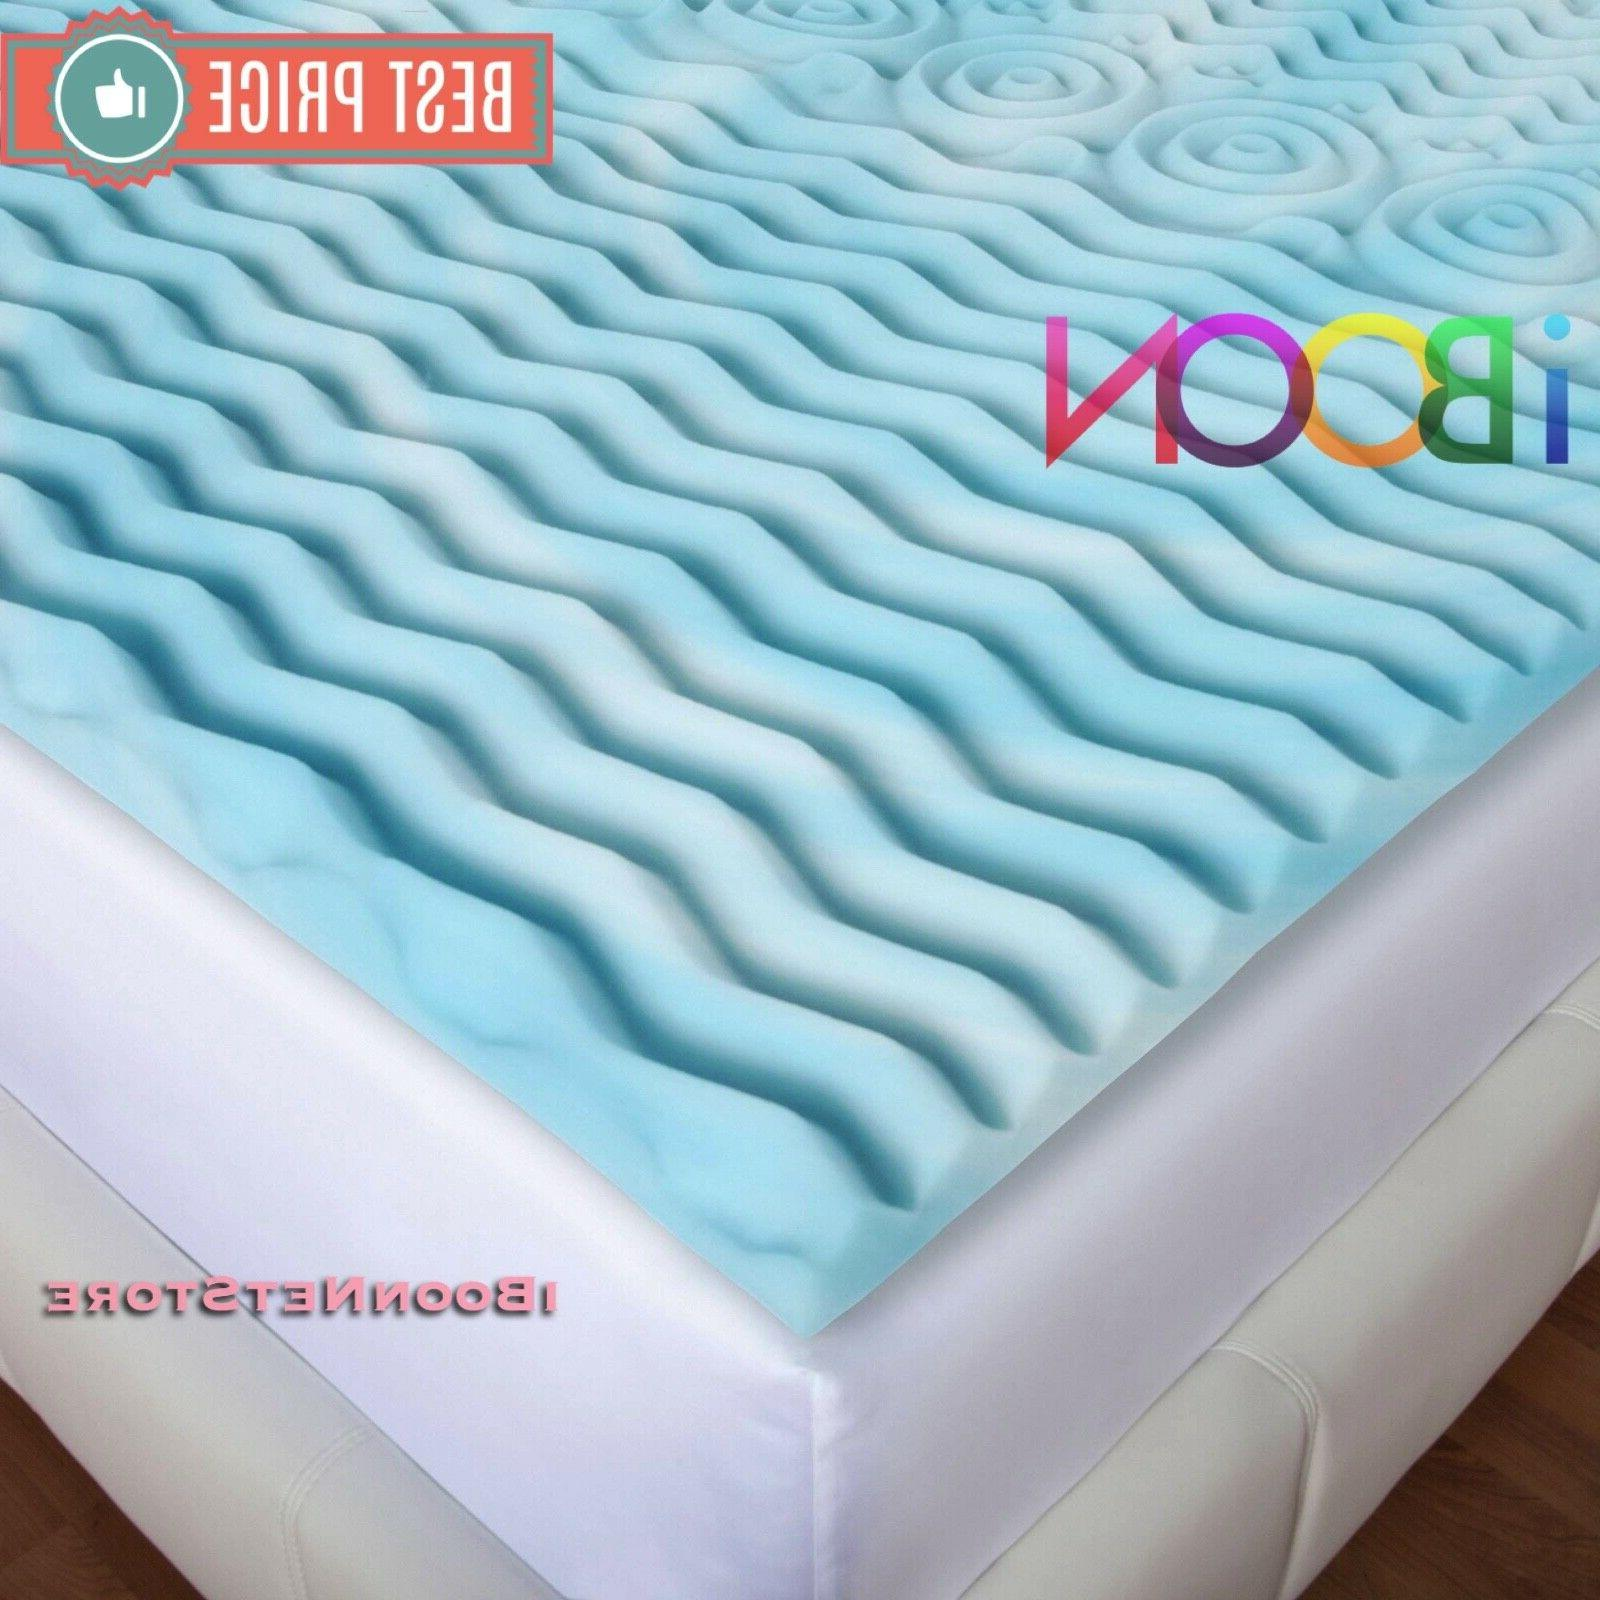 Orthopedic Bed 2 Inch Foam Mattress Topper Hypoallergenic